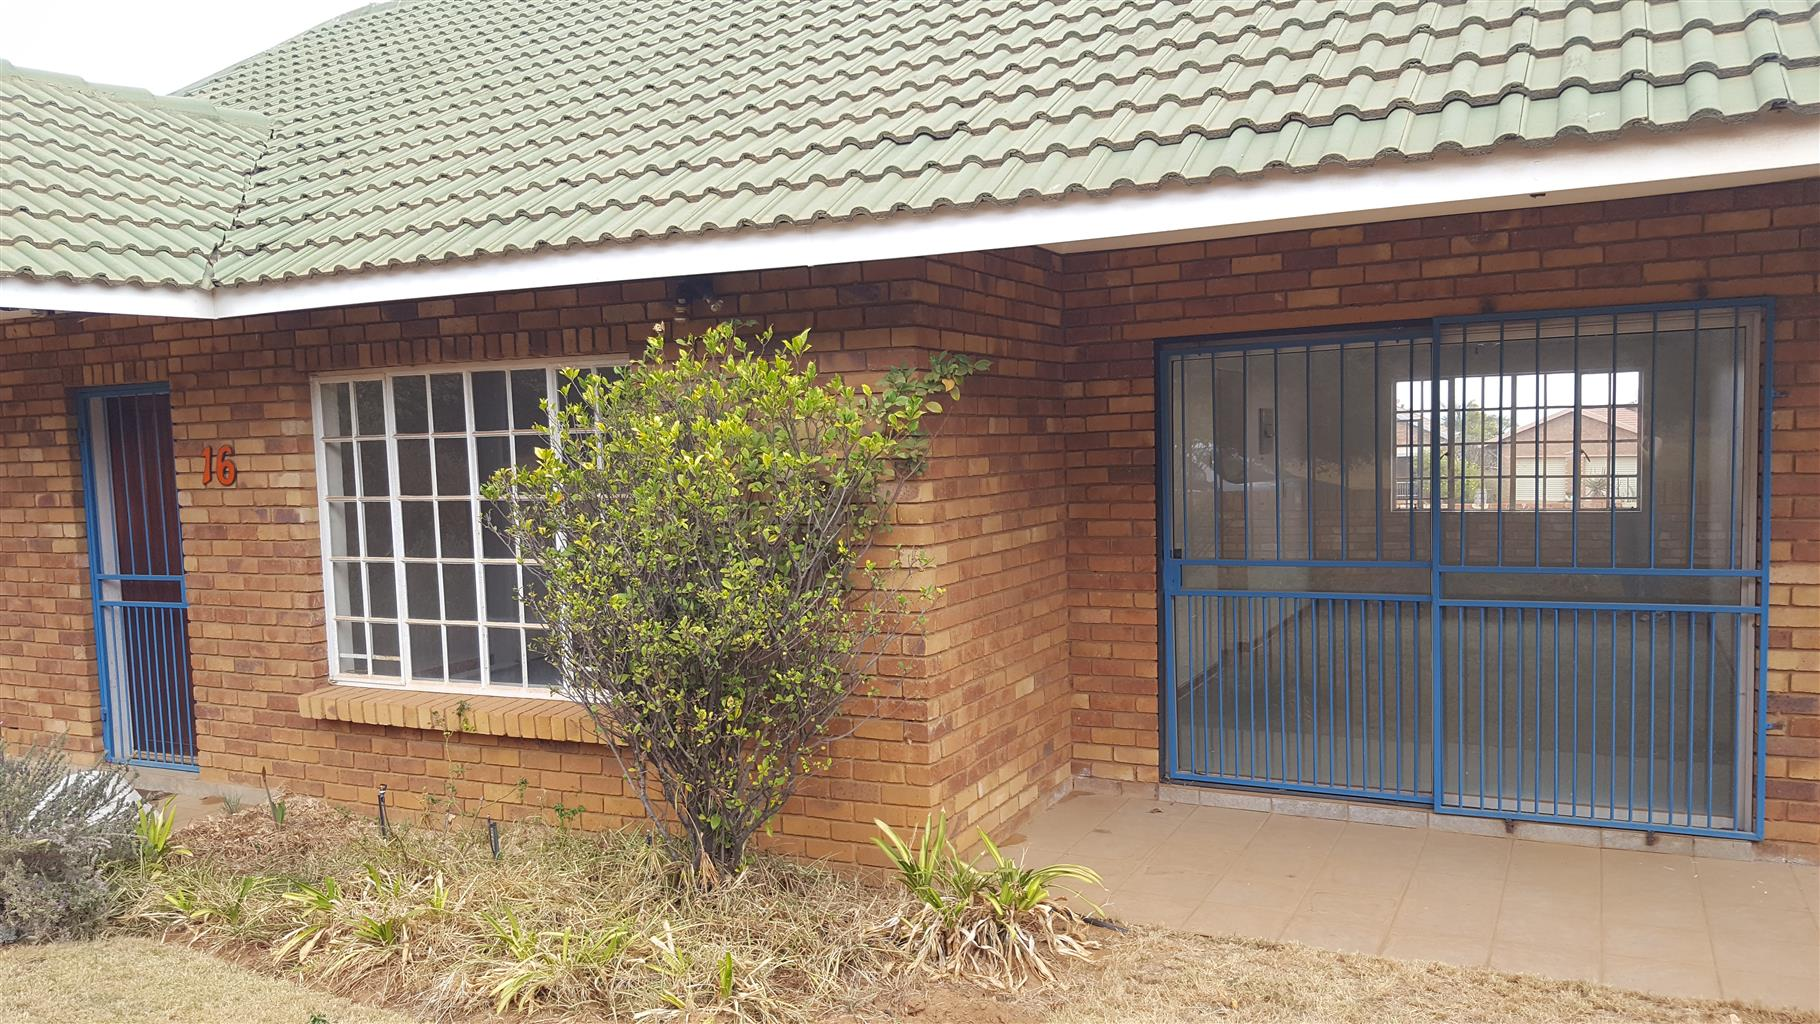 House to rent on Game Farm in Pretoria